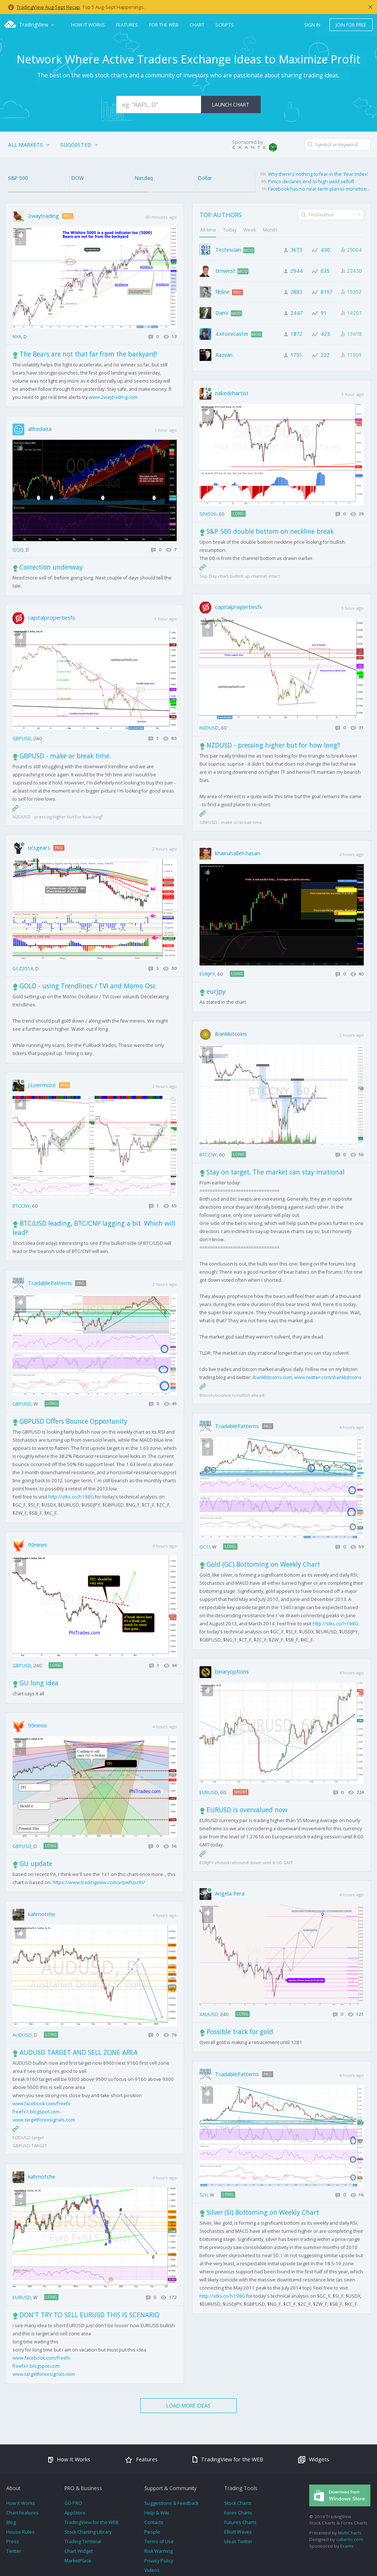 Owler Reports - TradingView Blog New feature of Pine Script